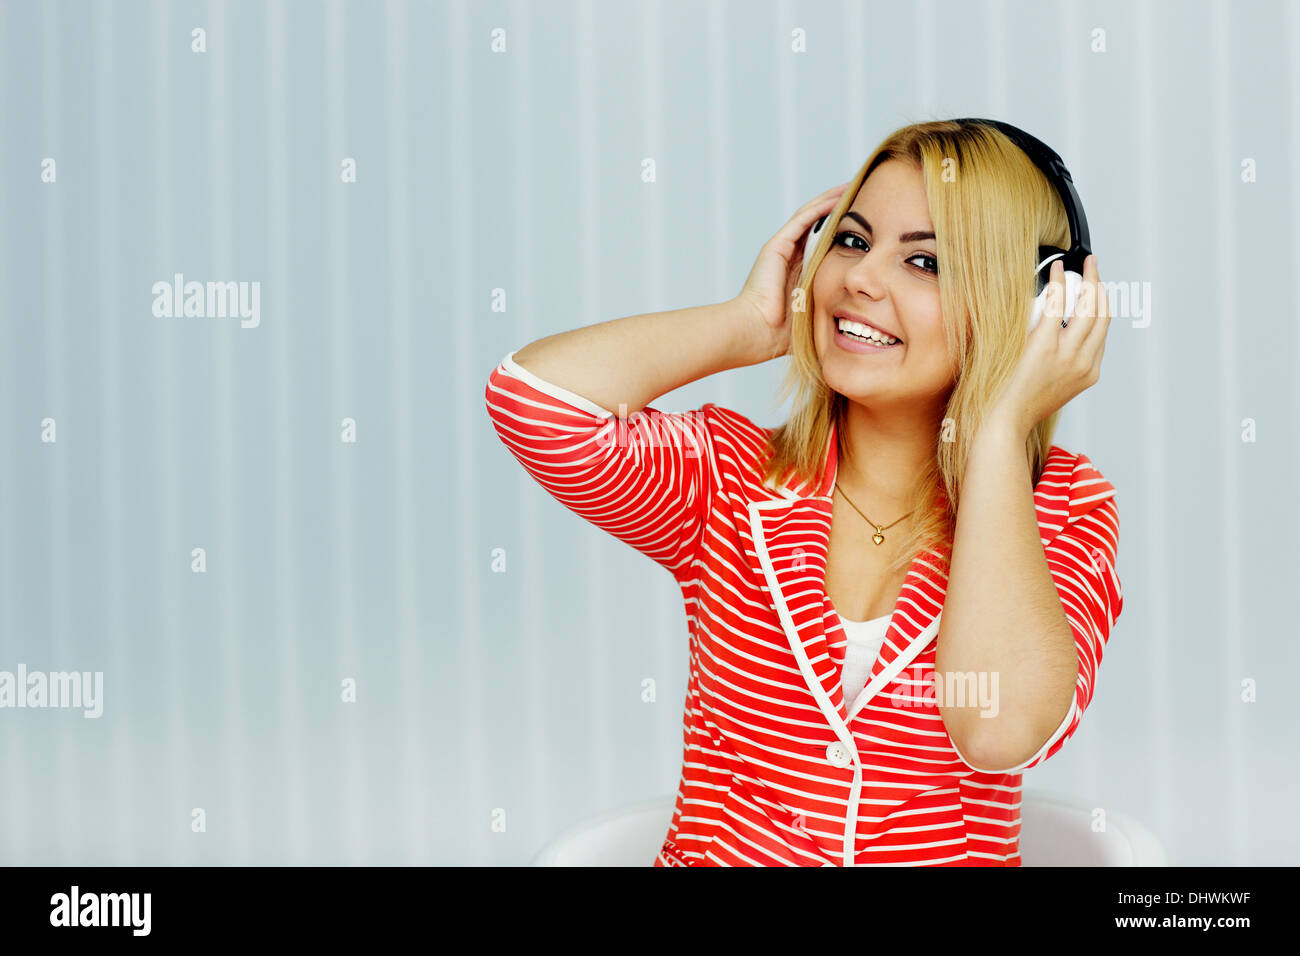 Portrait of a young woman in red jacke listening to music - Stock Image